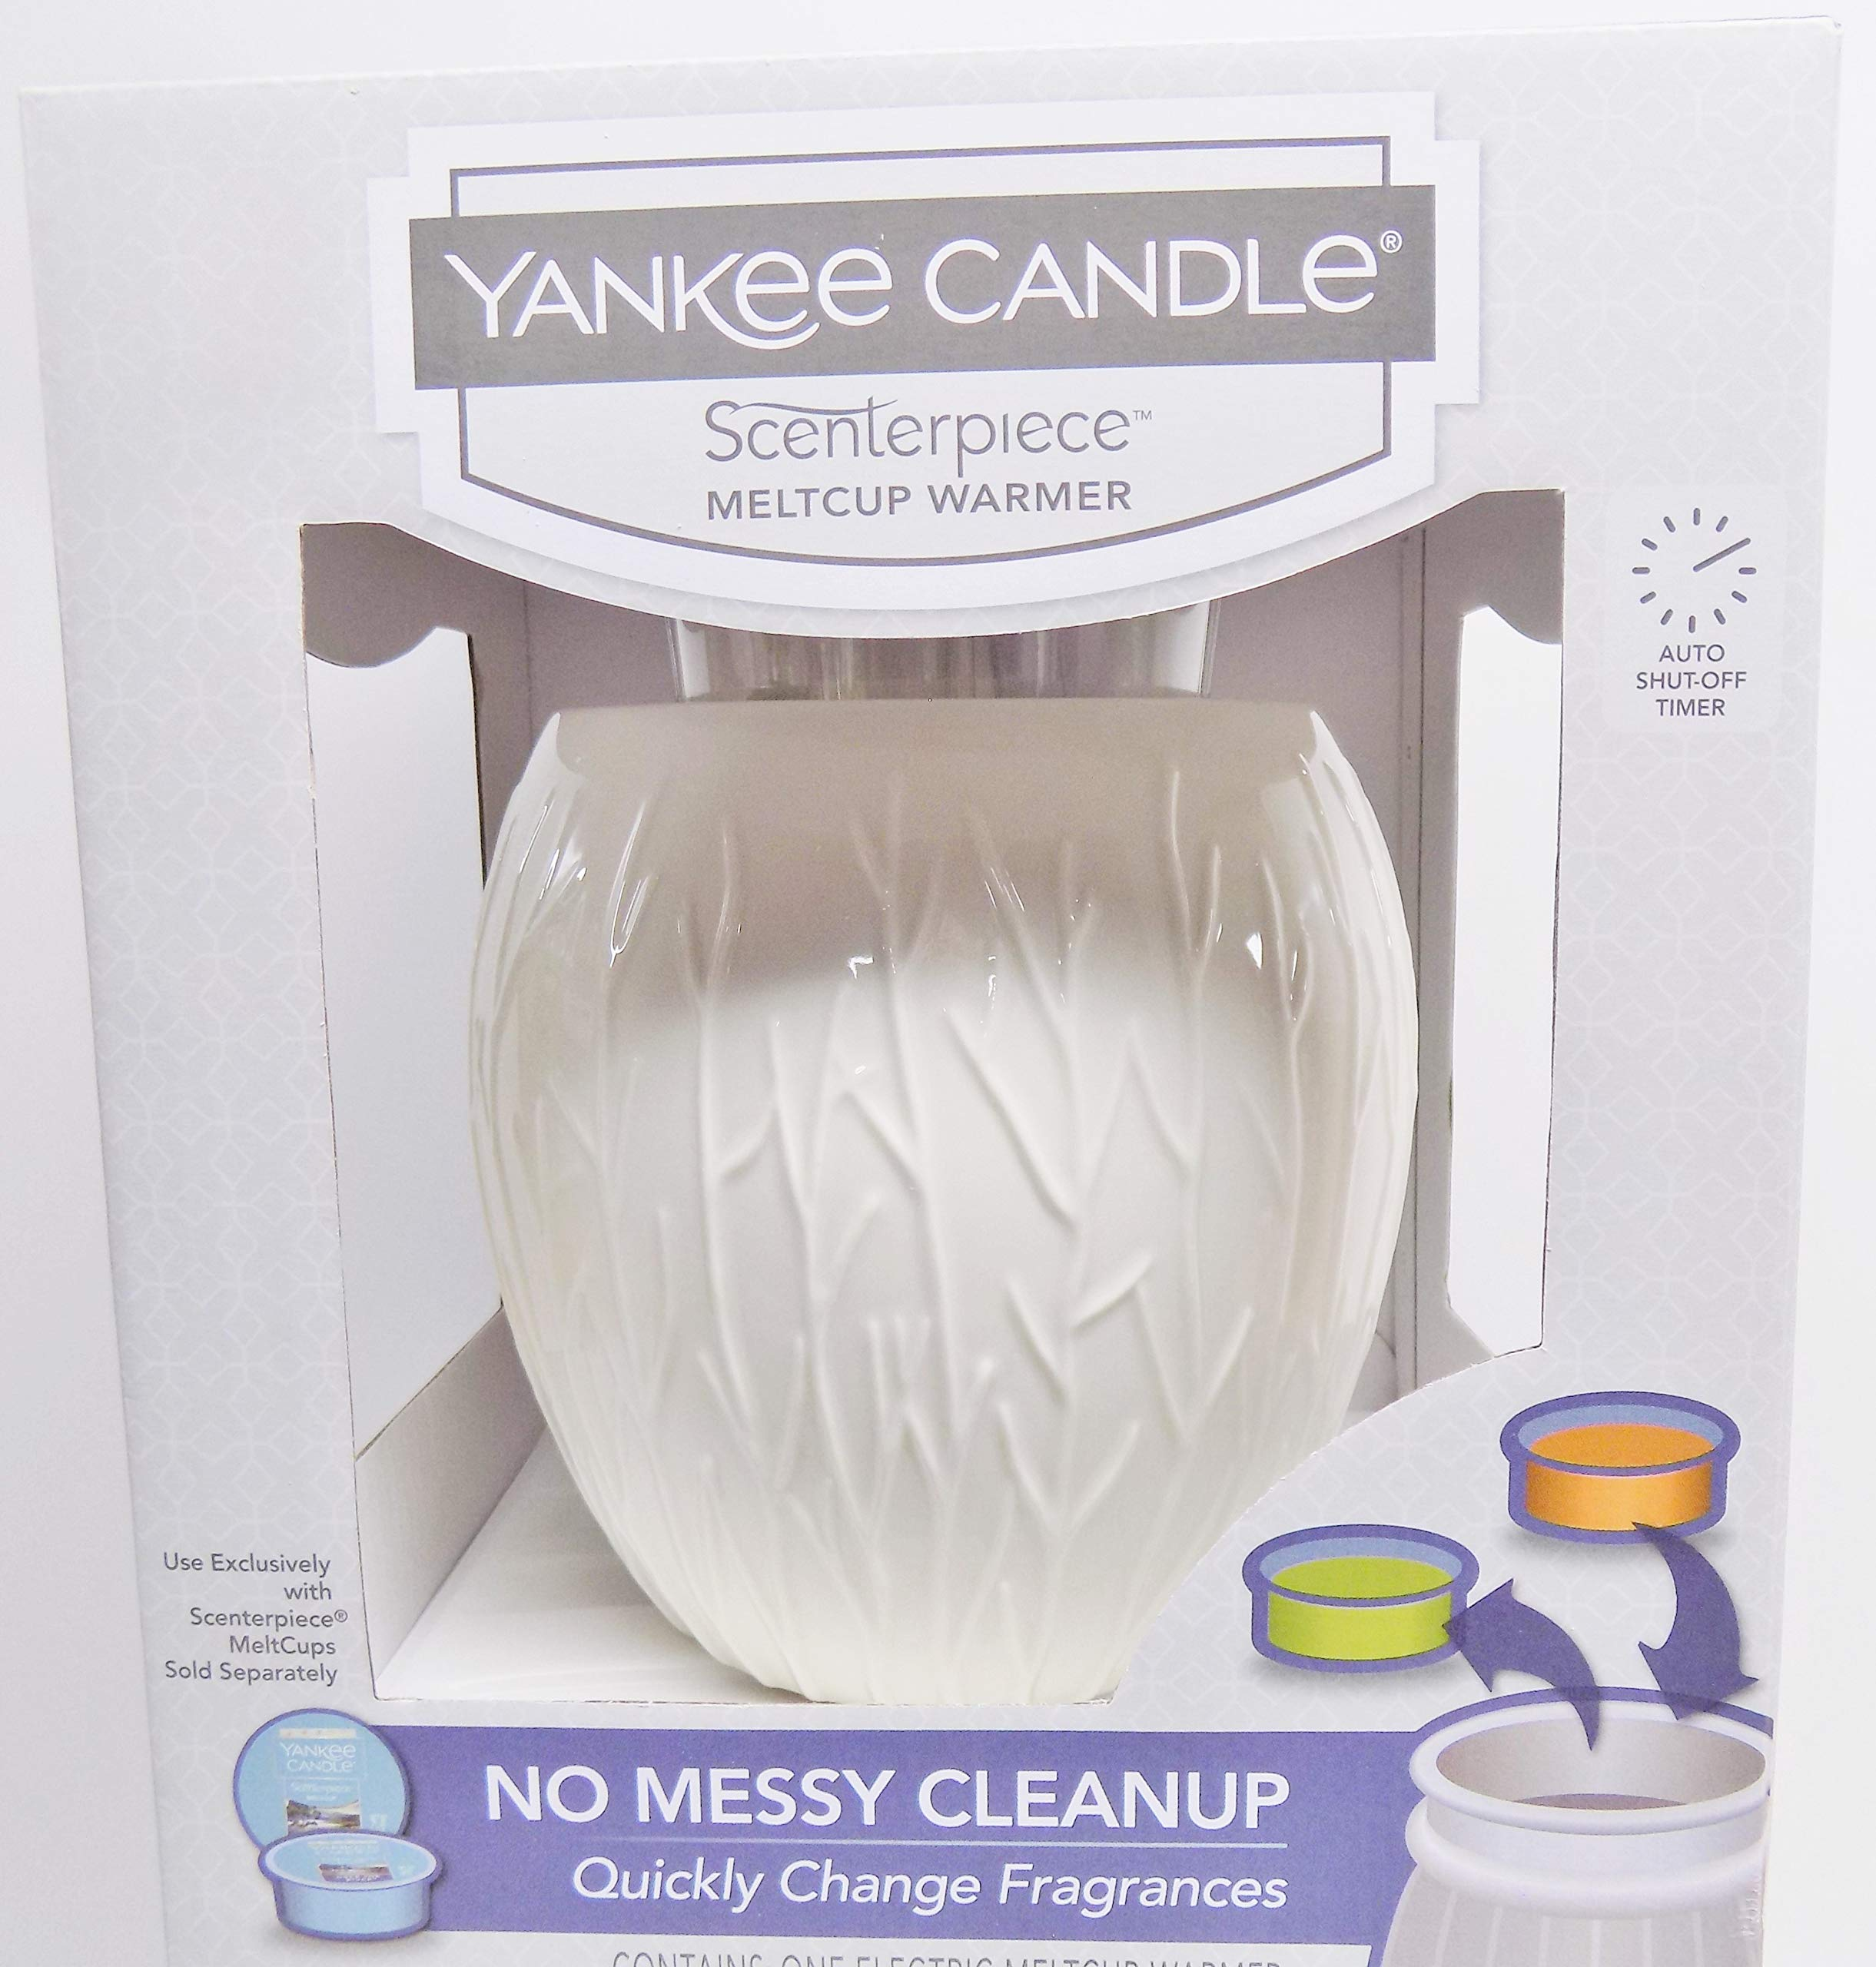 Yankee Candle Forest Glow Scenterpiece Meltcup Warmer With Auto Shutoff Timer by Yankee Candle